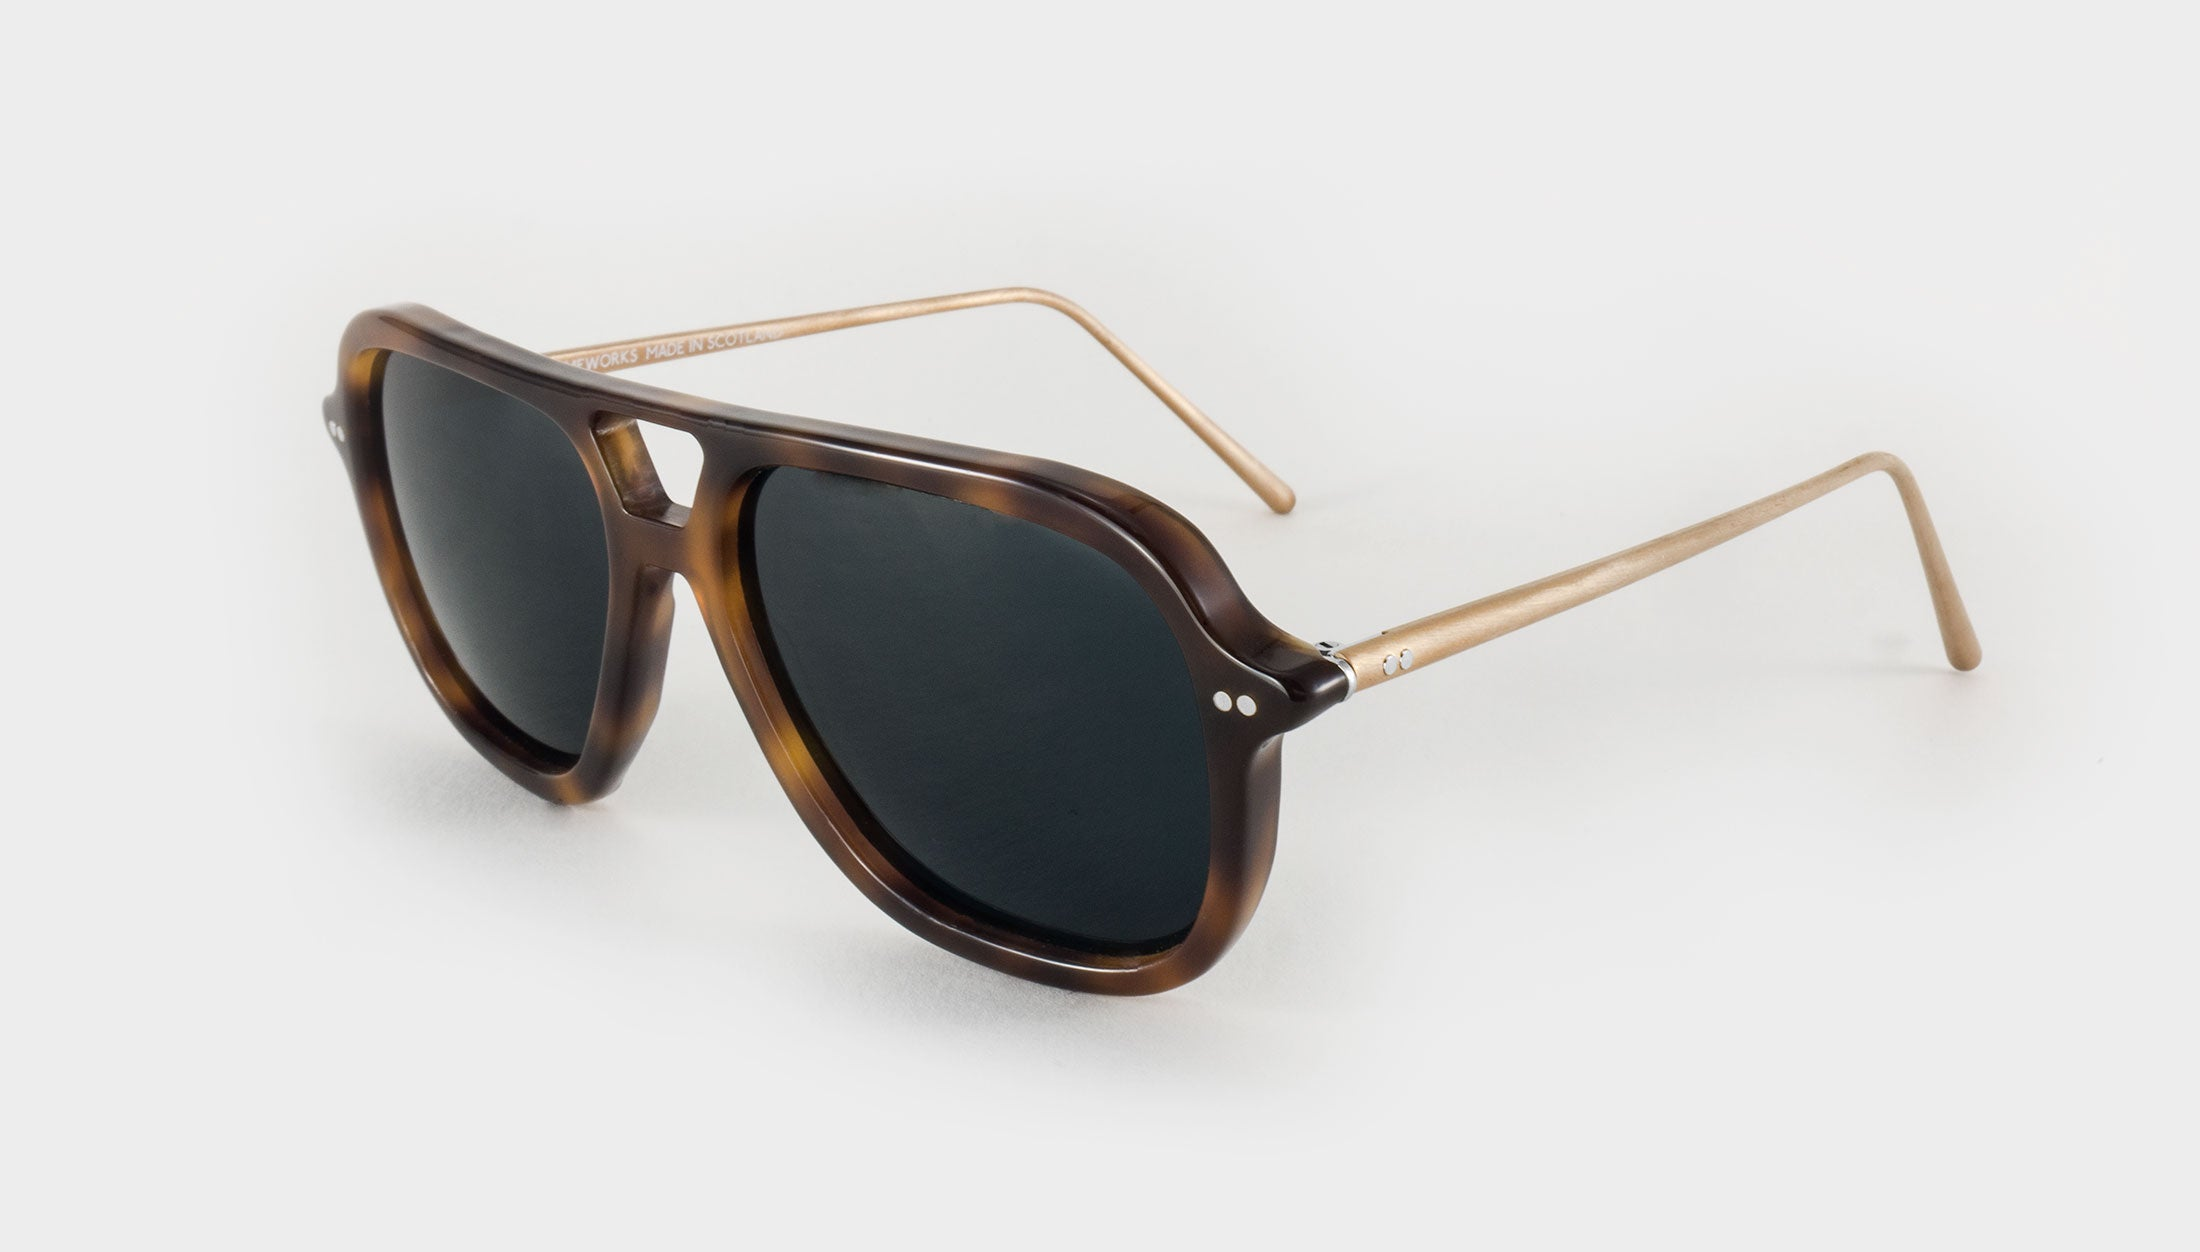 tortoise shell aviators side view